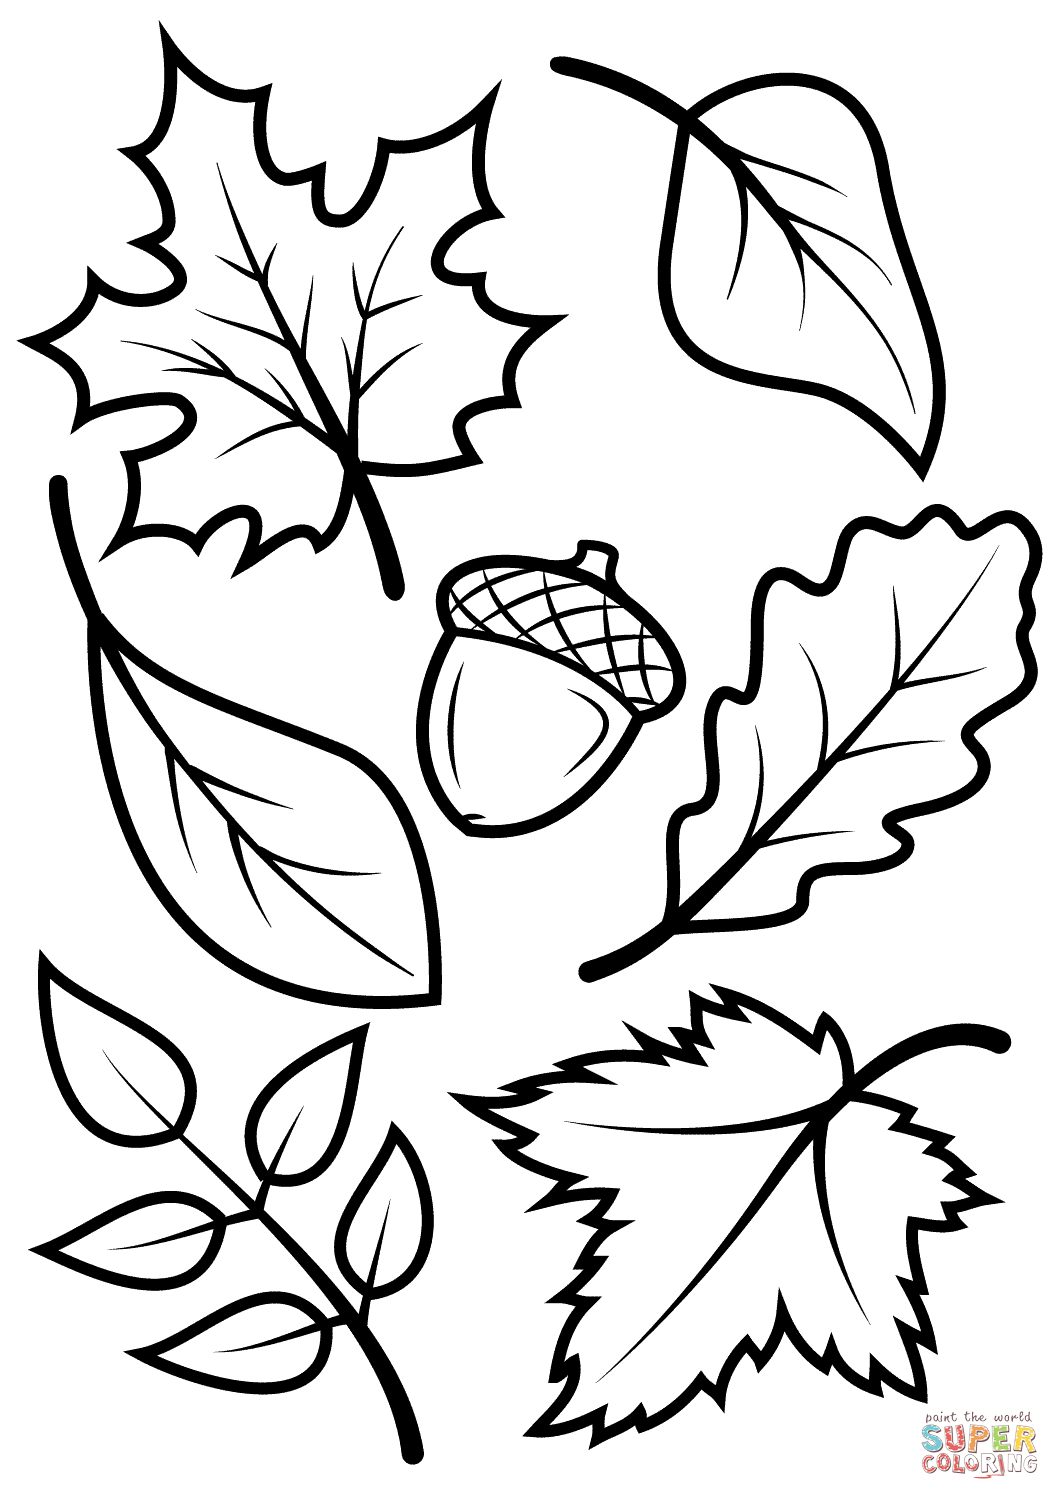 Fall Leaves And Acorn Coloring Page | Free Printable Coloring Pages - Free Printable Leaf Coloring Pages